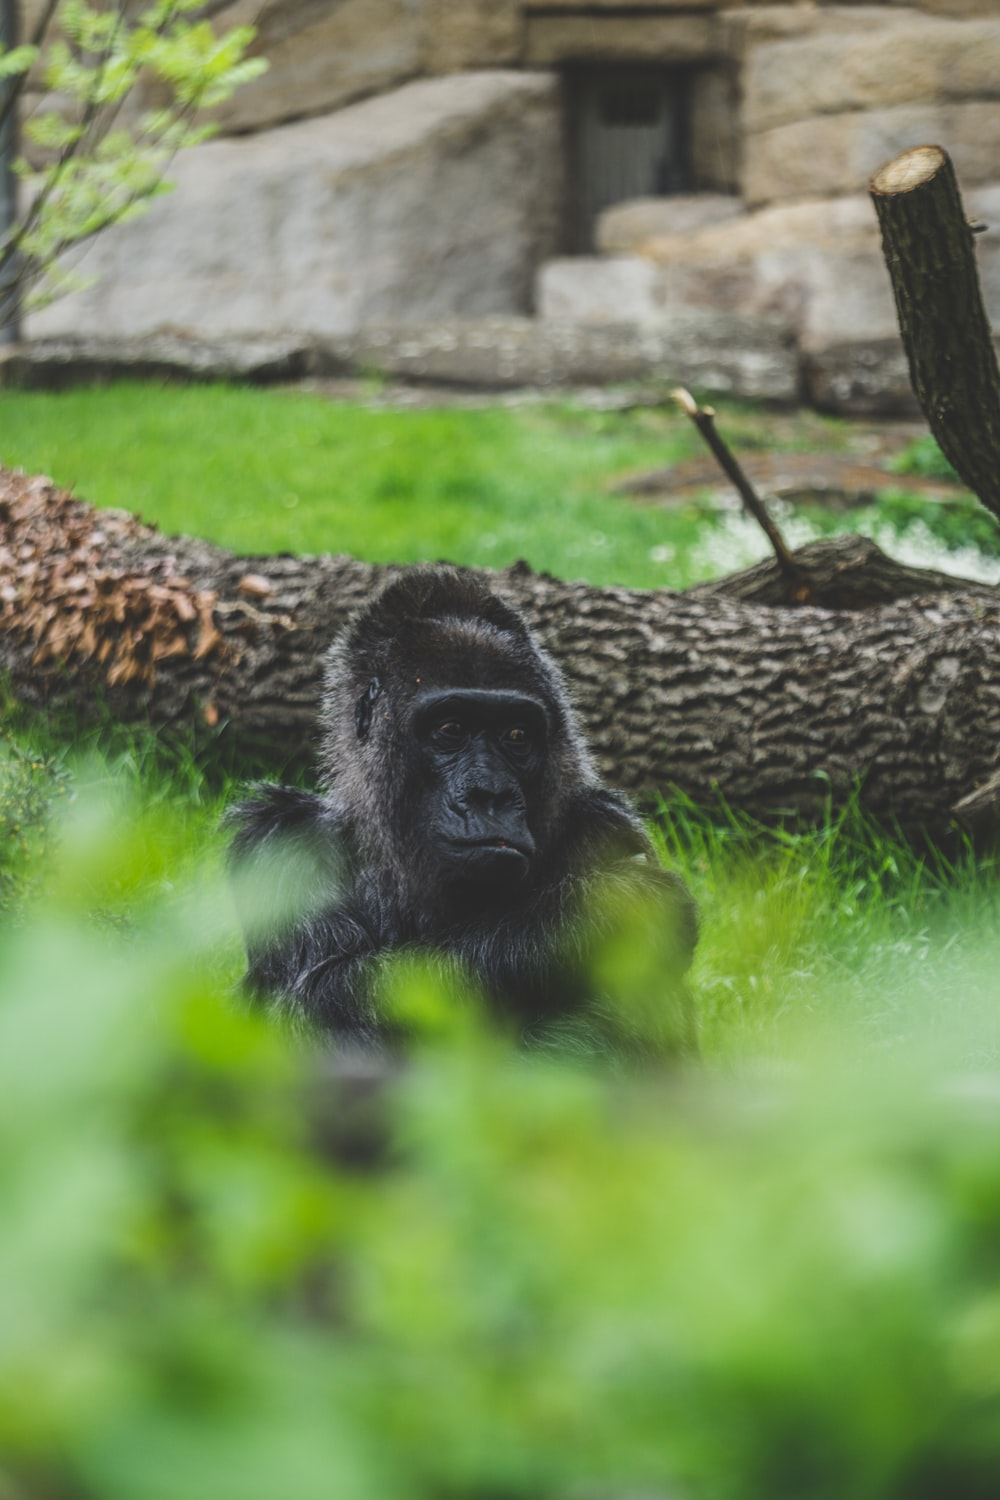 black Orangutan behind green bushes near tree trunk at daytime